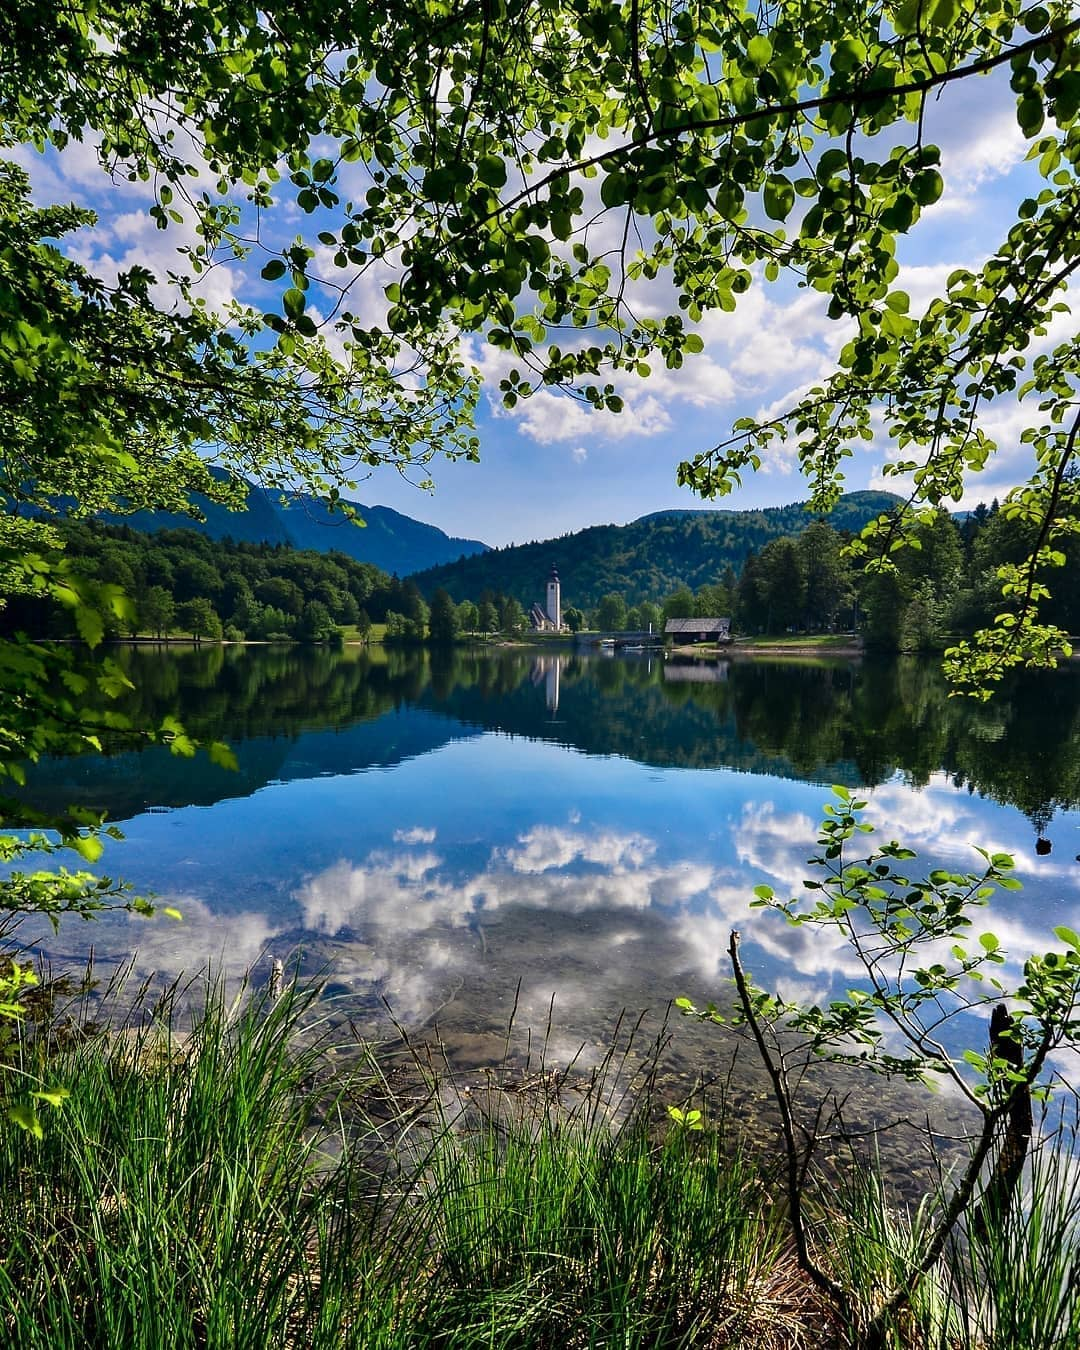 Embraced by lush geeen nature, lake Bohinj is one of the most attractive destinations in Slovenia.  Thanks @gregorskobernephotography for sharing your photo with #ifeelsLOVEnia.